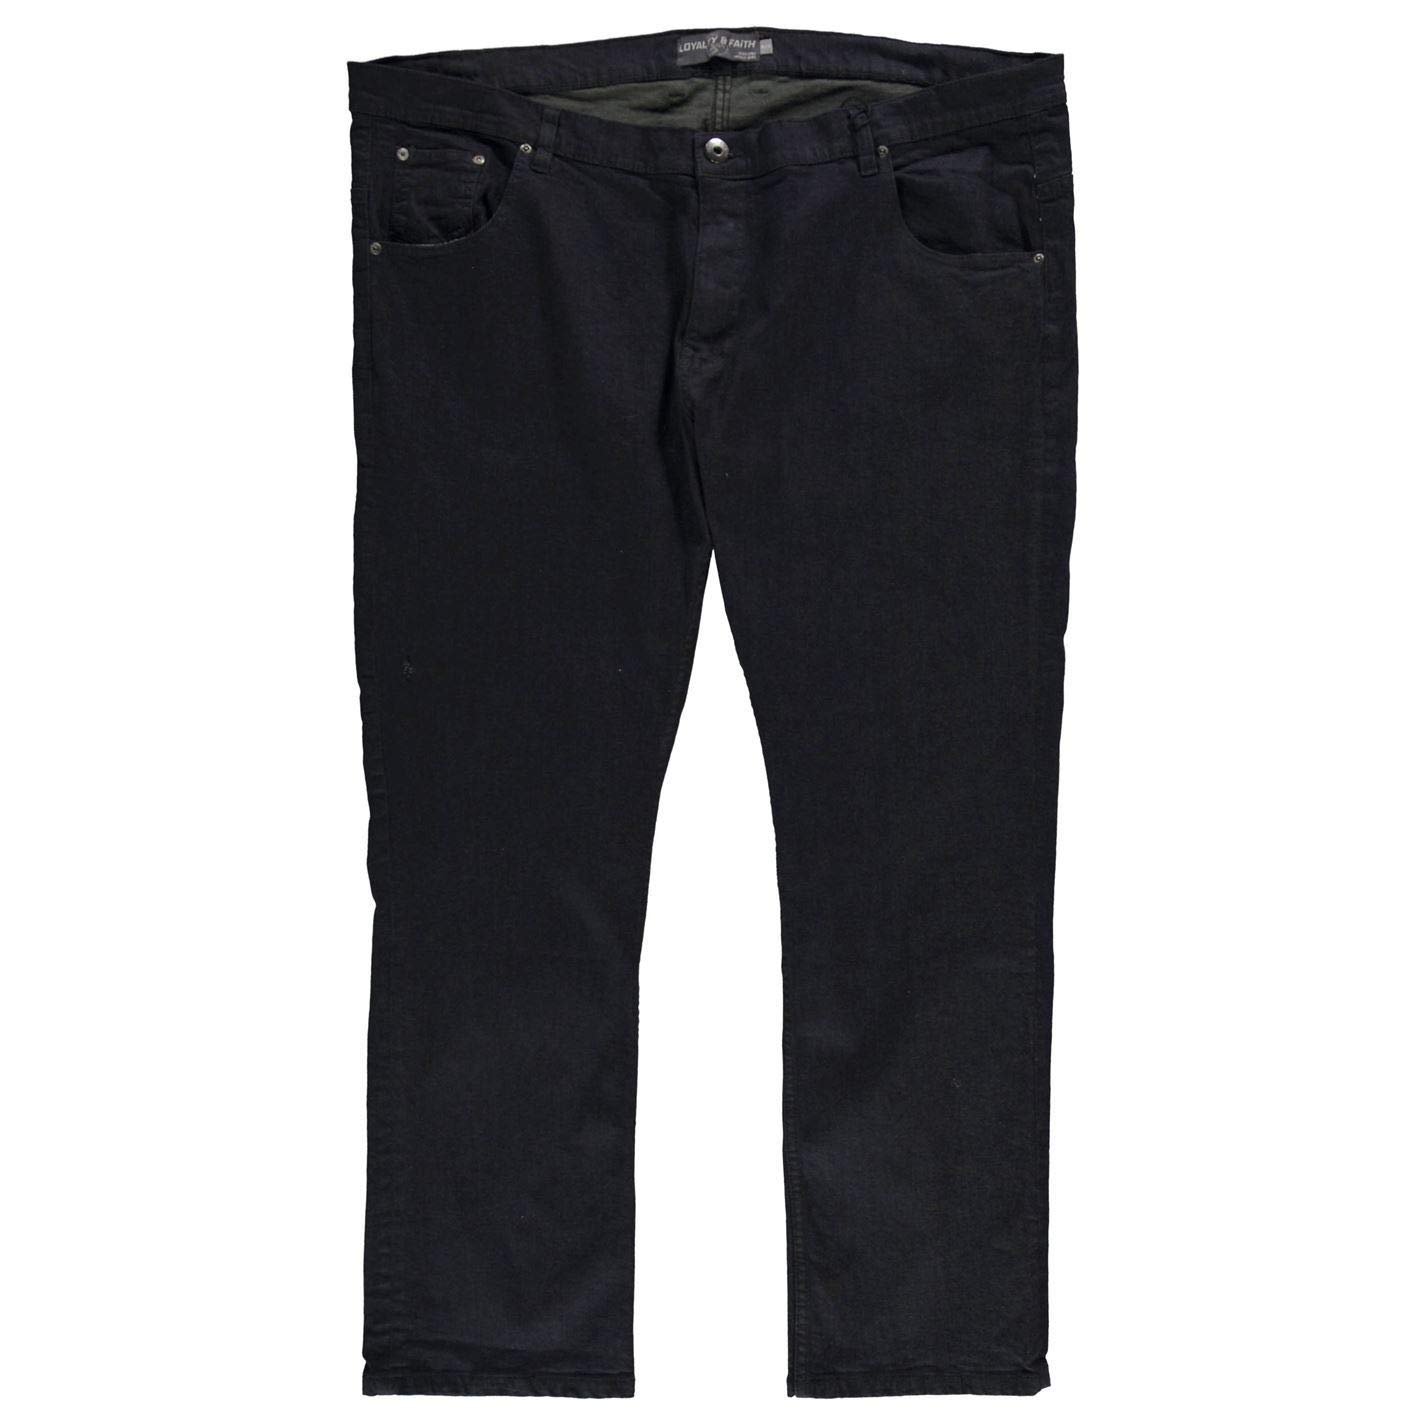 Loyalty and Faith Jeans Denim Treaty Mens Trouser Pants